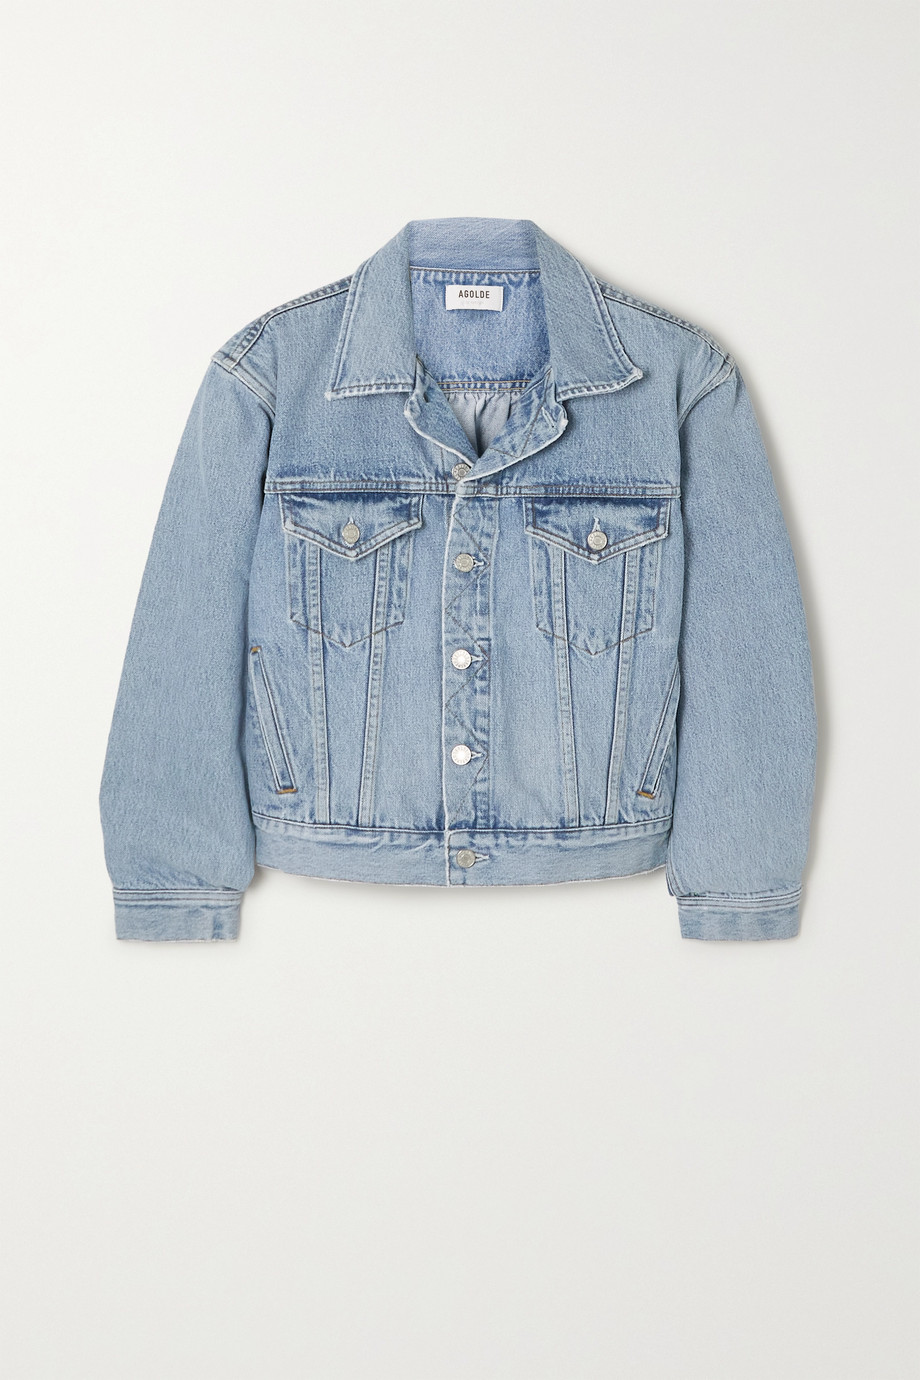 AGOLDE + NET SUSTAIN Blanca gathered organic denim jacket